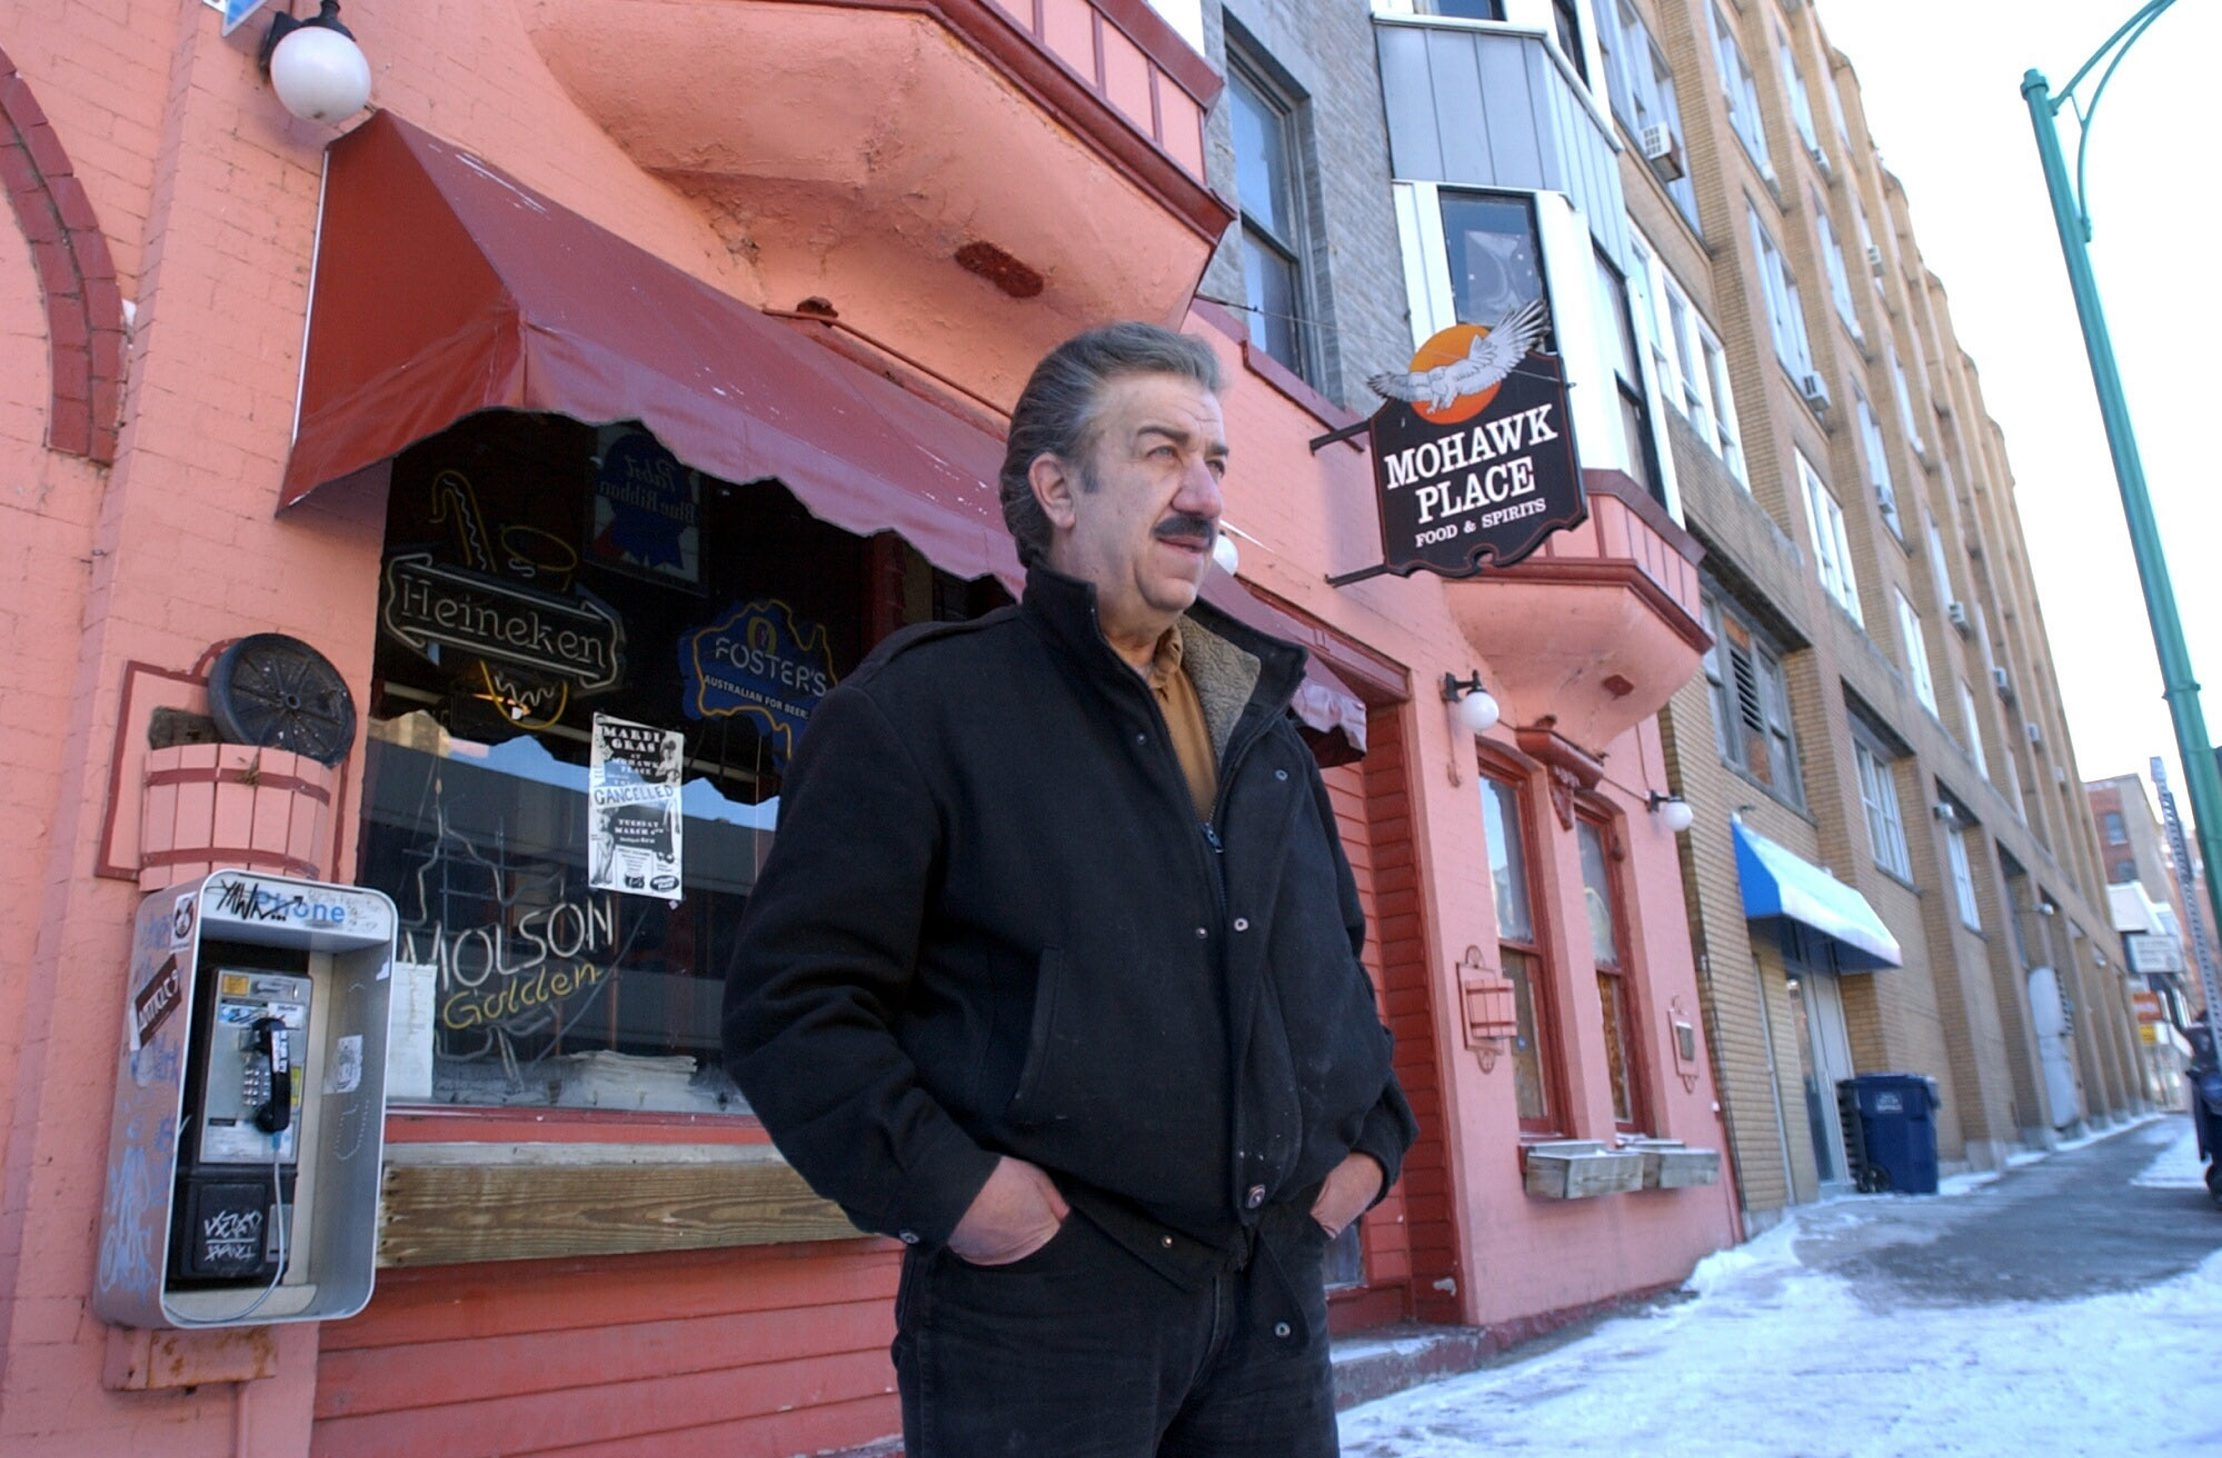 Pete Perrone started Mohawk Place as a haven for the rockabilly, blues, and roots music he loved.